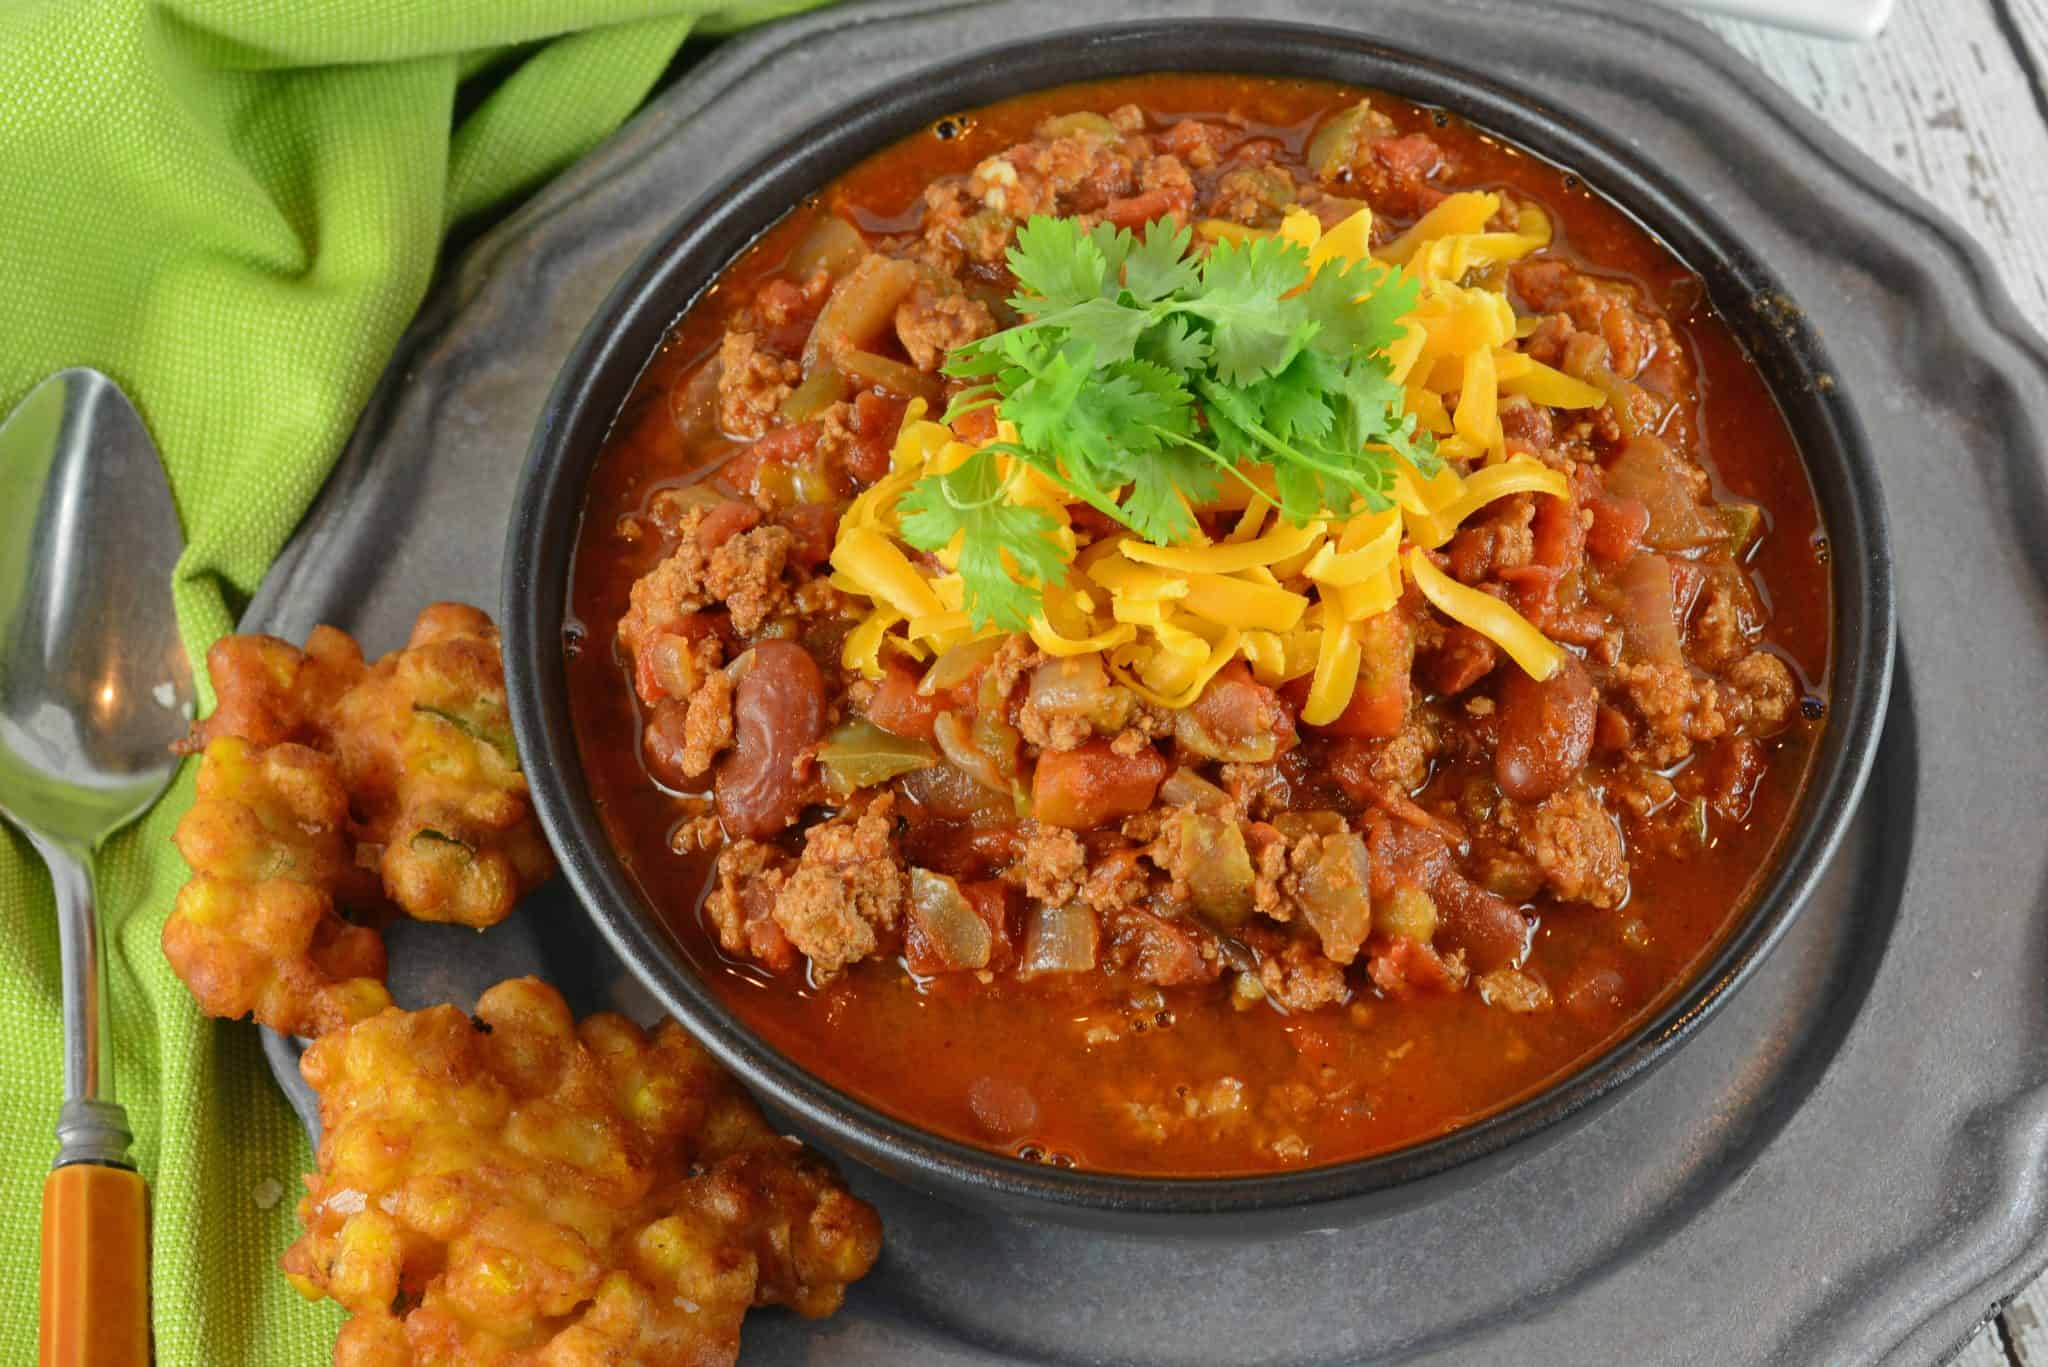 Easy Chili is a spicy mix full of ground beef, Italian sausage and vegetables, but there is a secret ingredient that makes it different from every other chili out there!